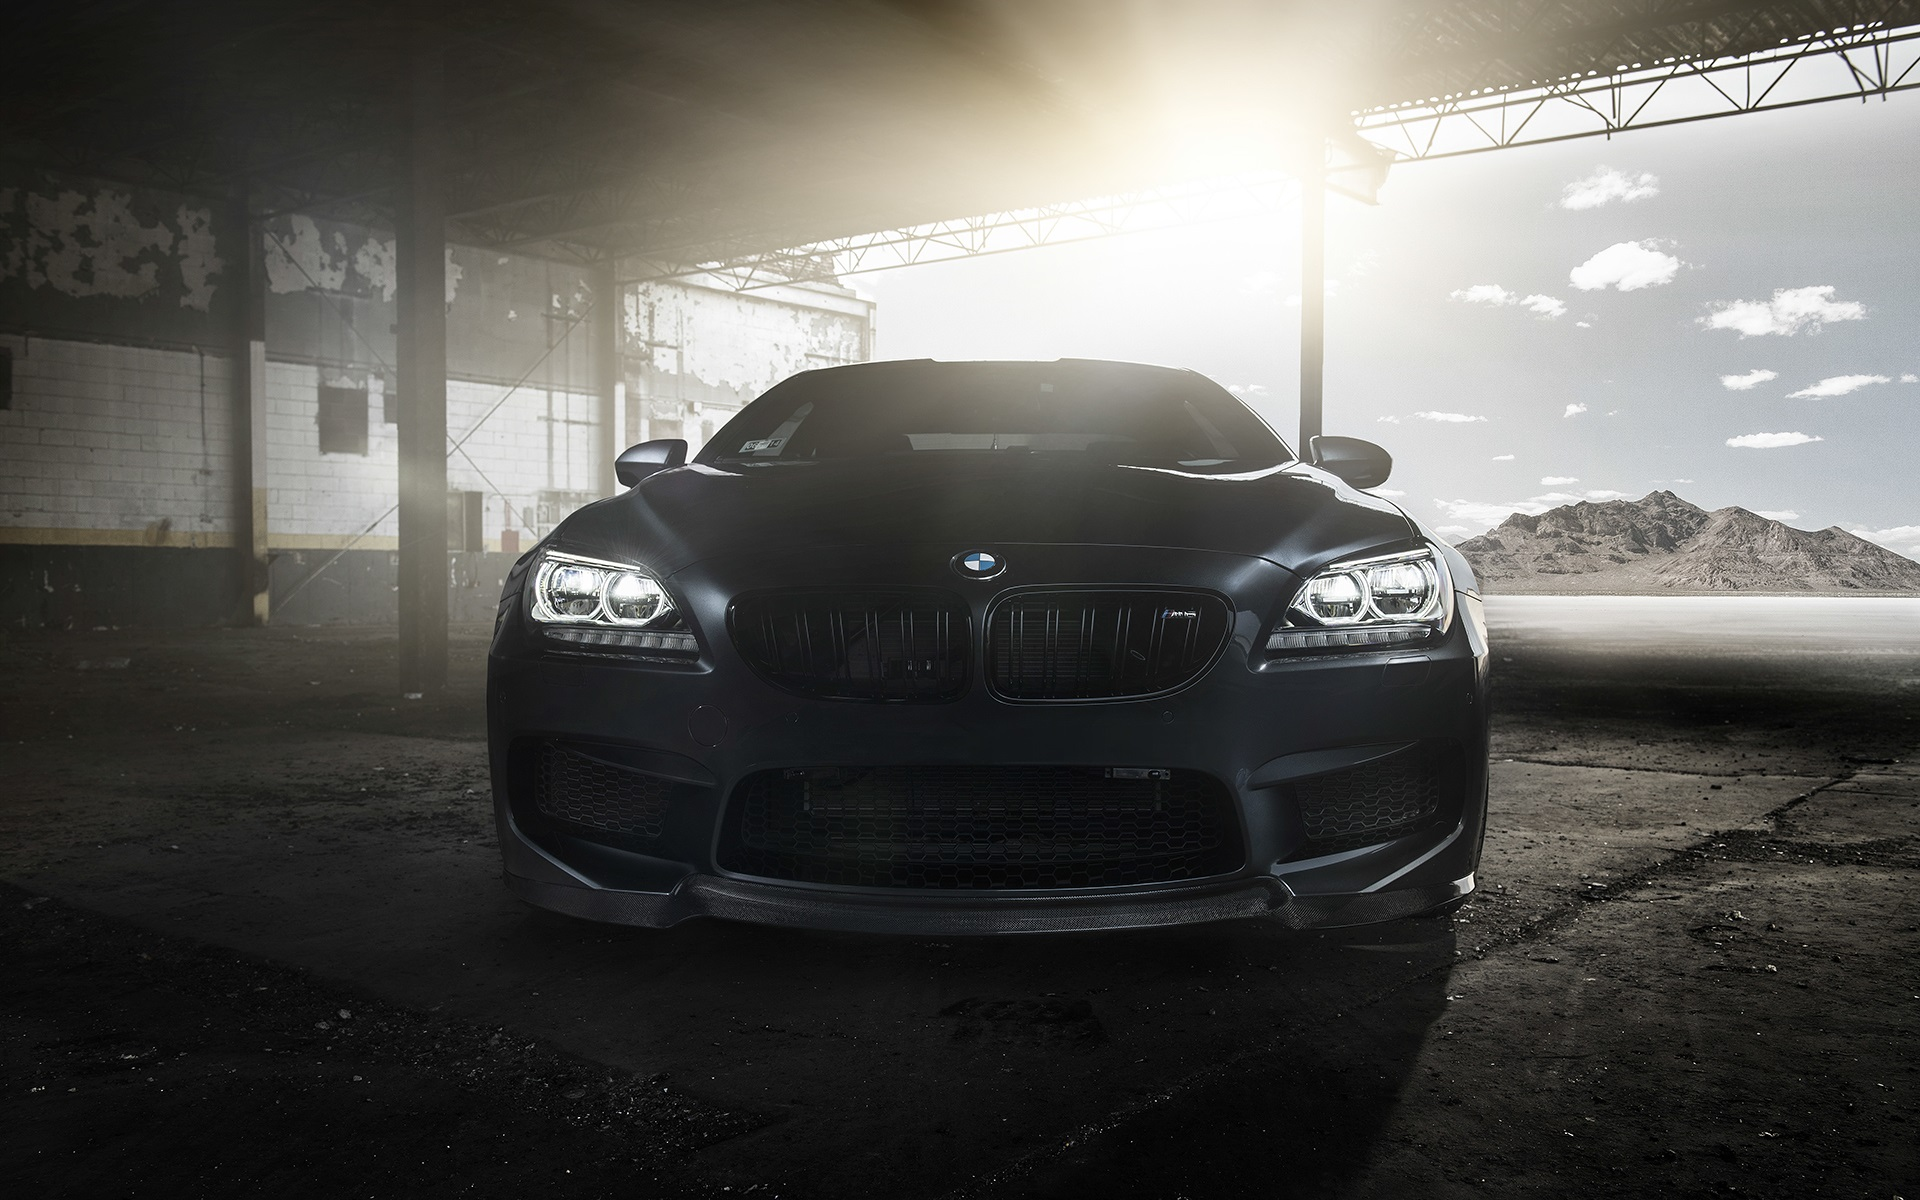 Wallpaper Bmw M6 Coupe F13 Black Car Front View 1920x1200 Hd Picture Image